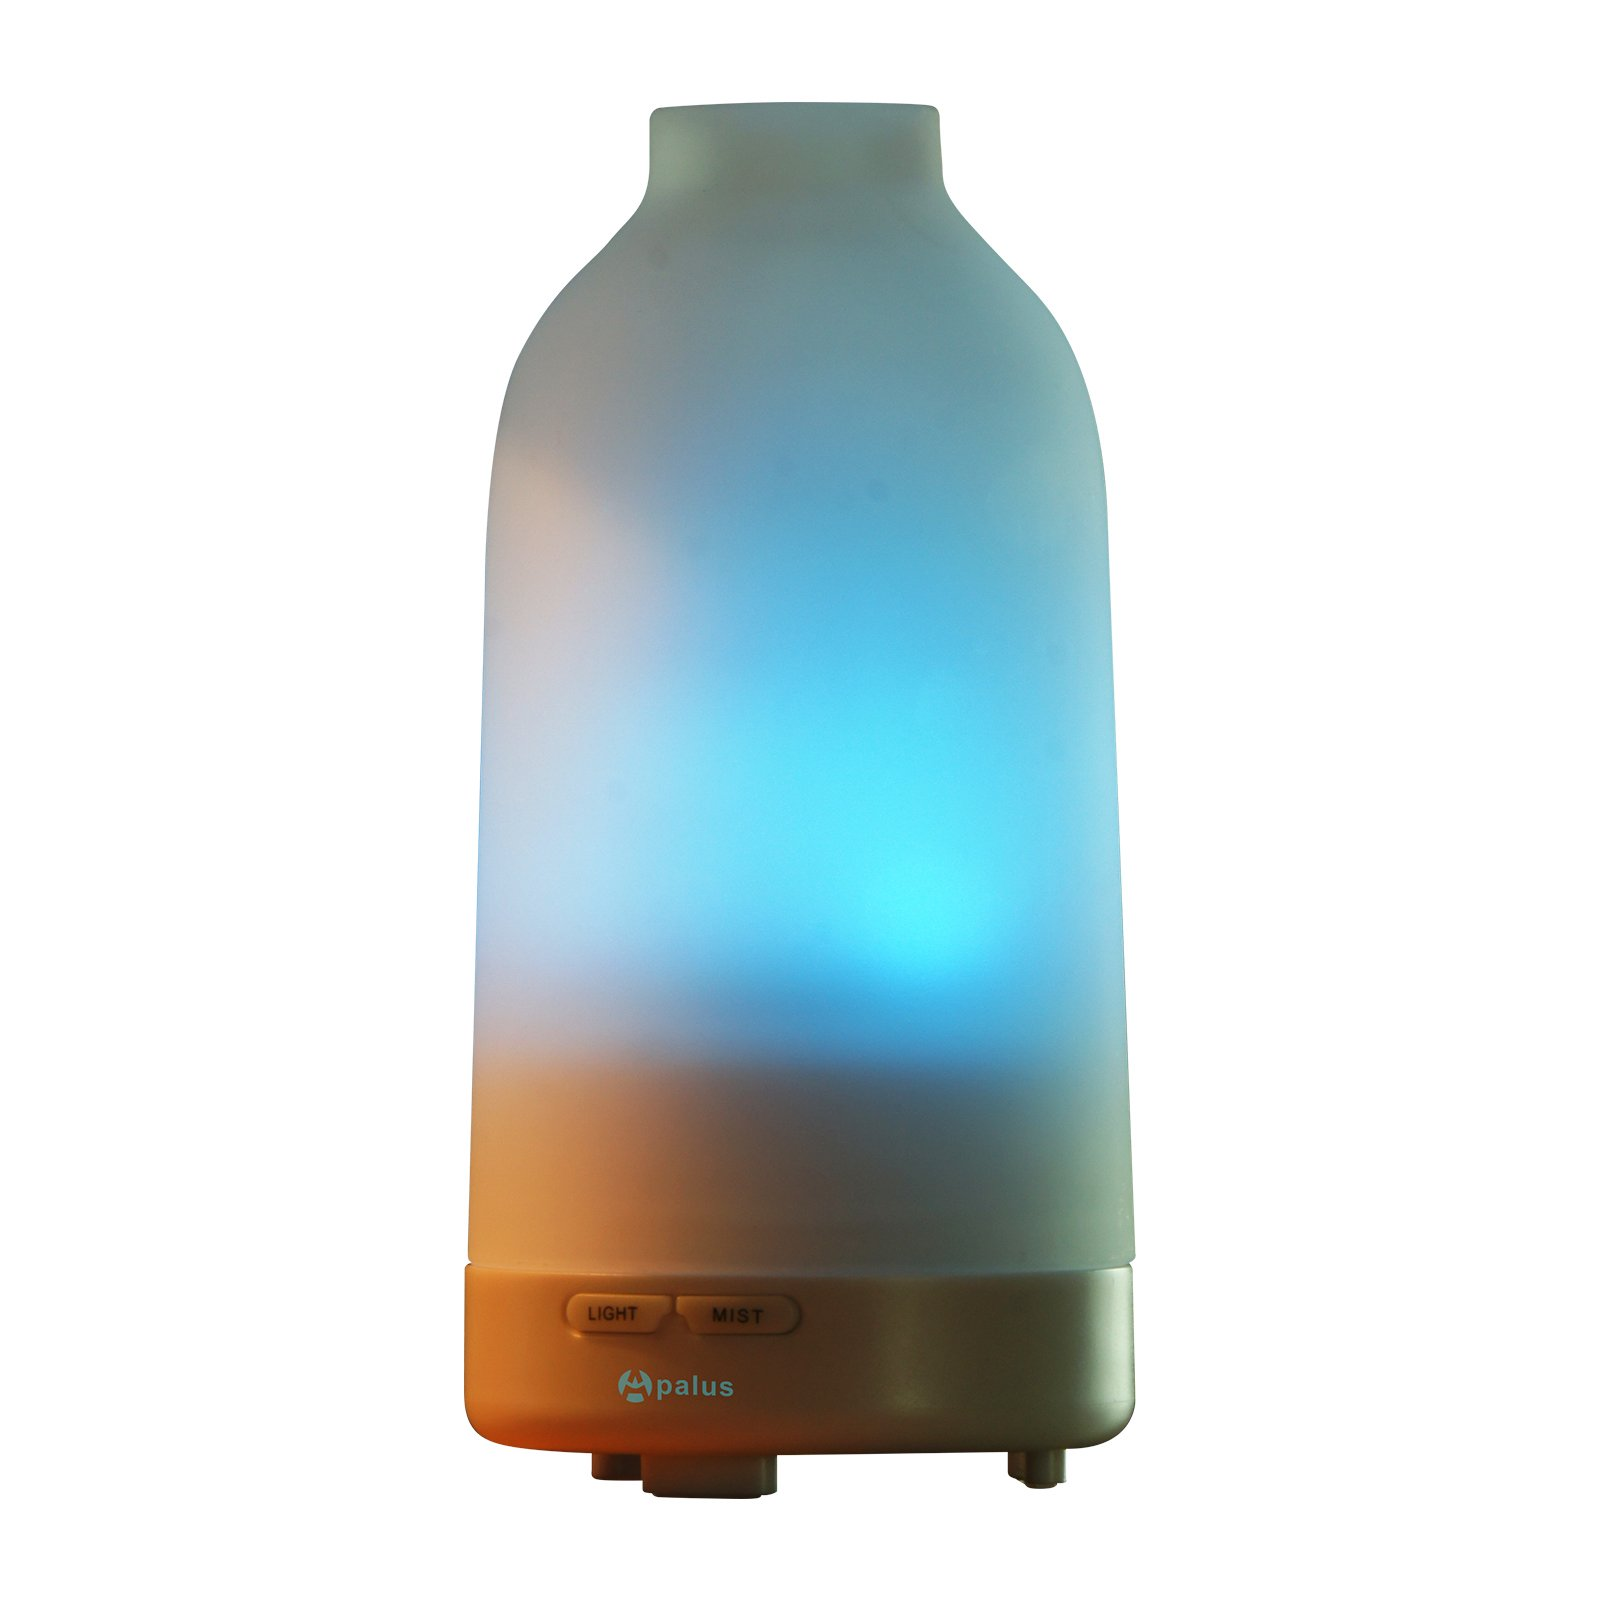 Apalus Glass Essential Oil Diffuser, Aromatherapy Diffuser, Ultrasonic Humidifier Air Purifier, with 7- Color LED Light,Auto Shut off